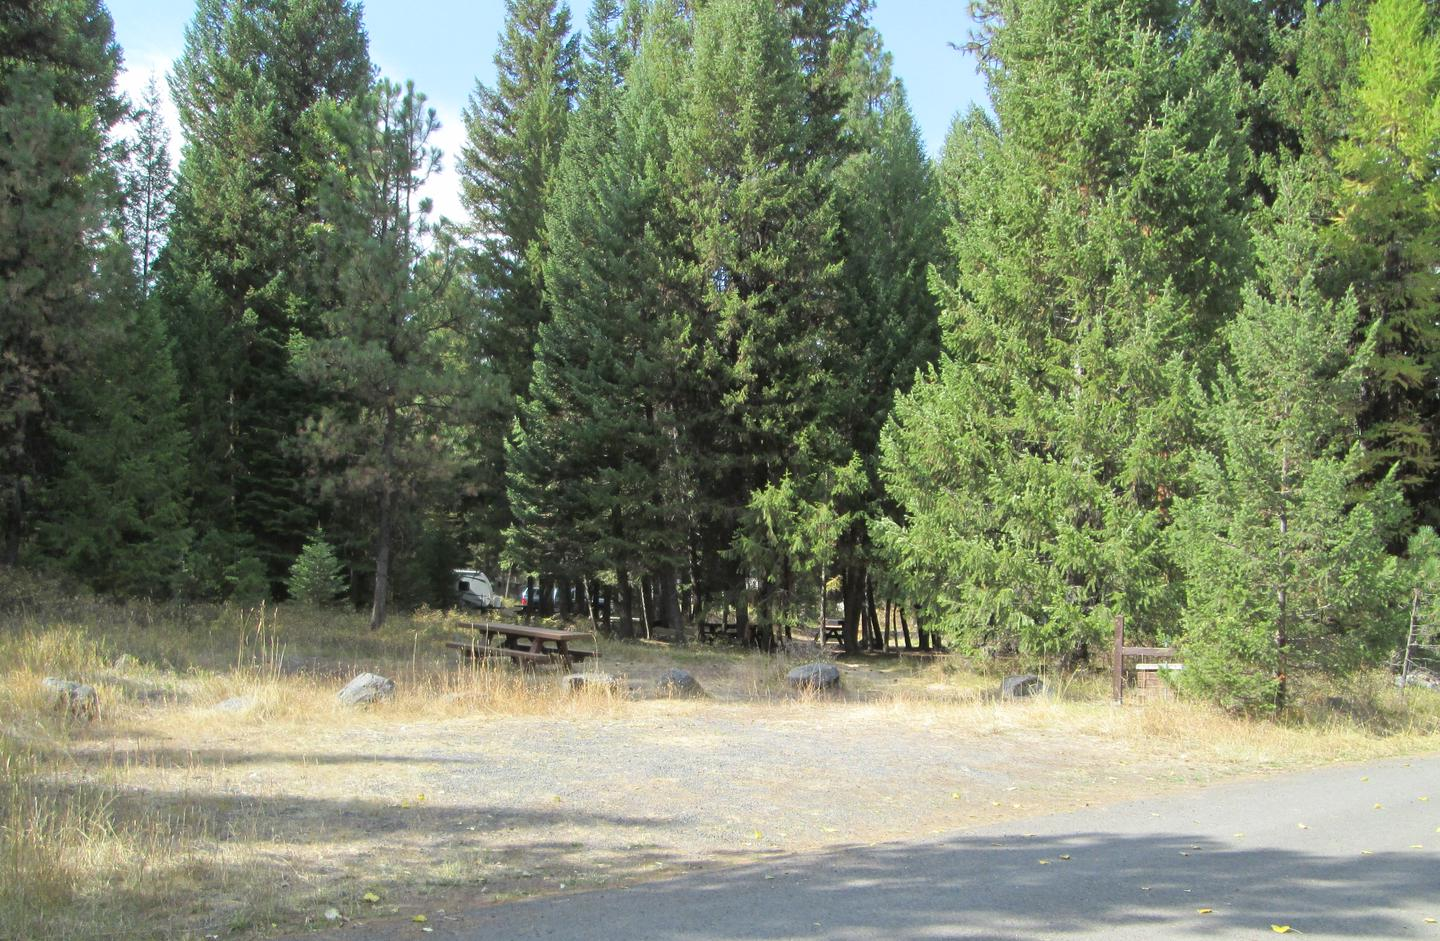 campsite parking area and entrance signBull Prairie Lake site #9